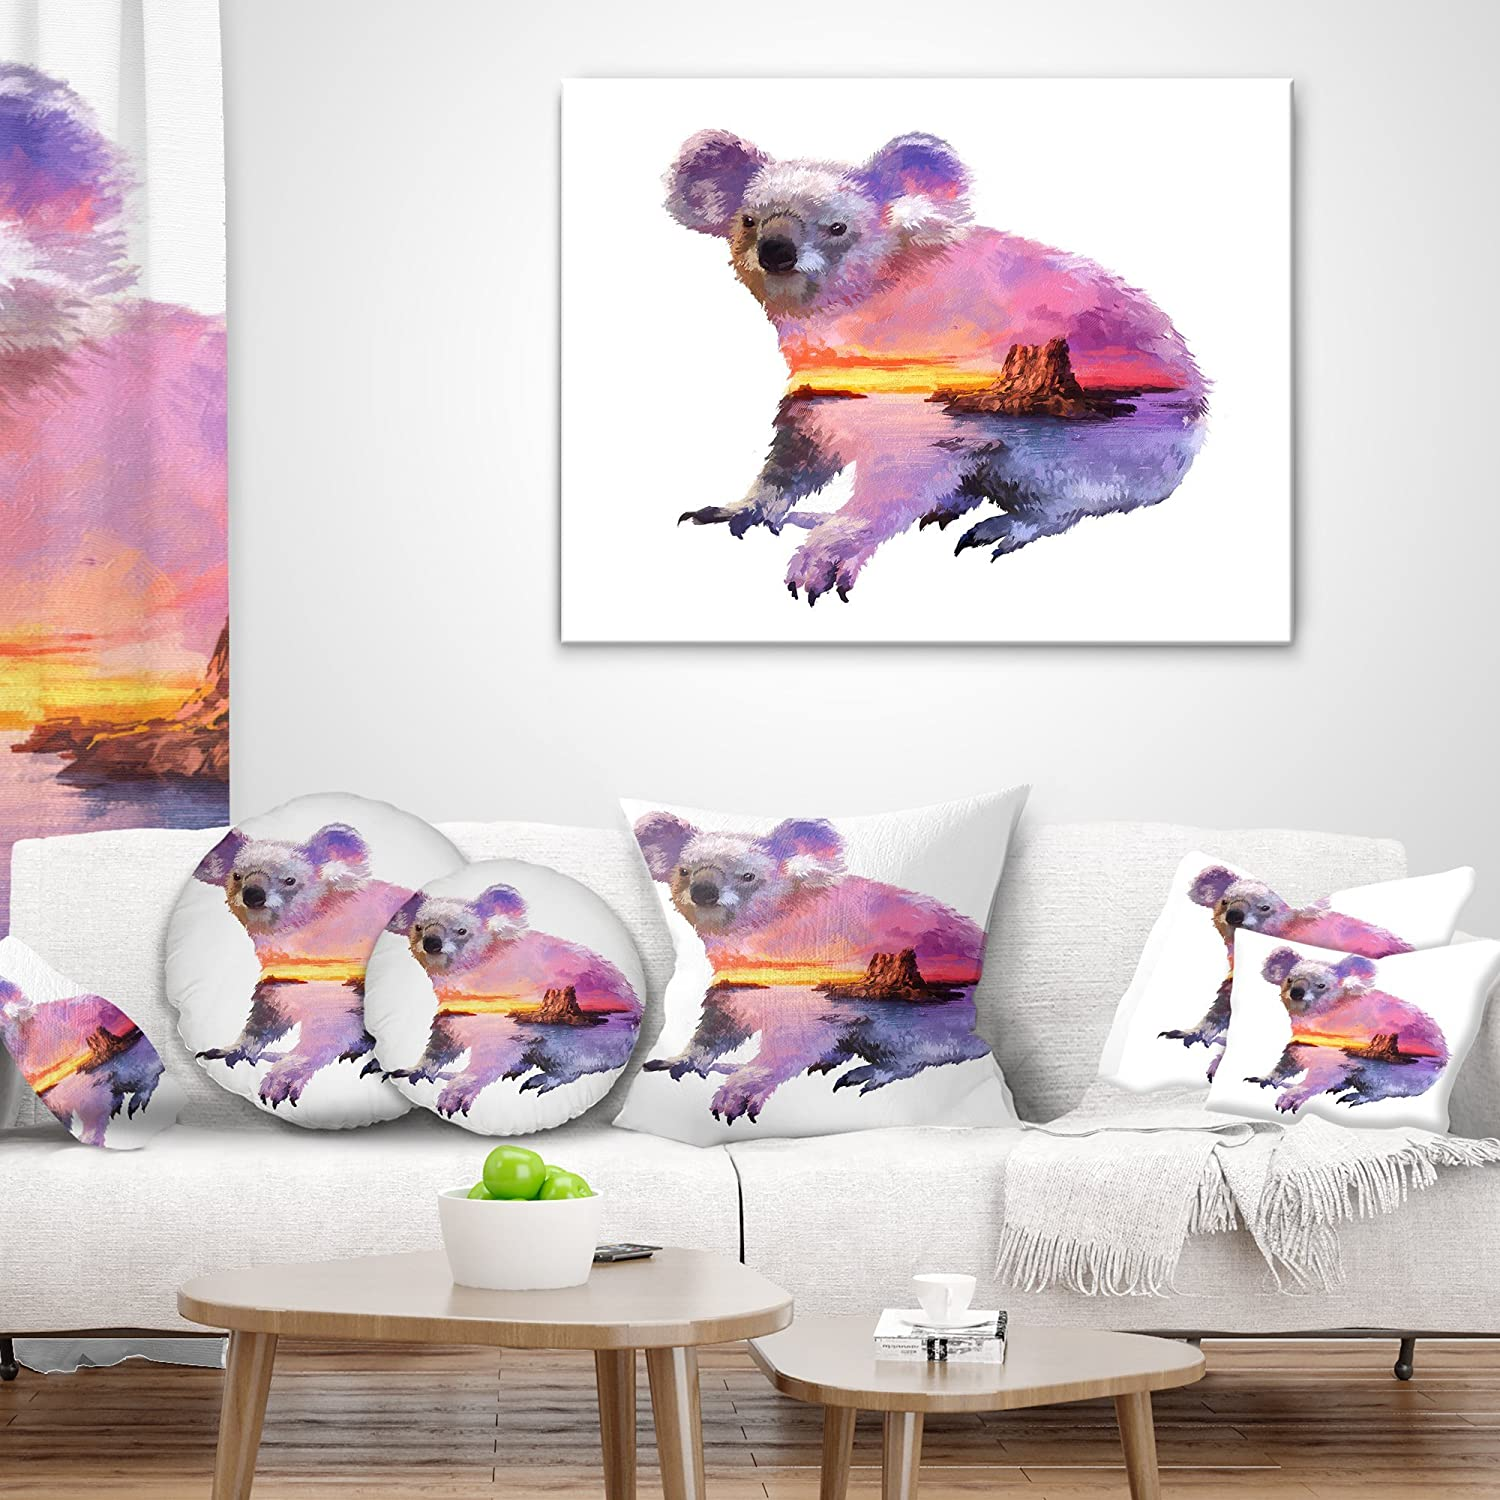 Designart CU14518-26-26 Koala Double Exposure Illustration Animal Cushion Cover for Living Room in Sofa Throw Pillow 26 in x 26 in